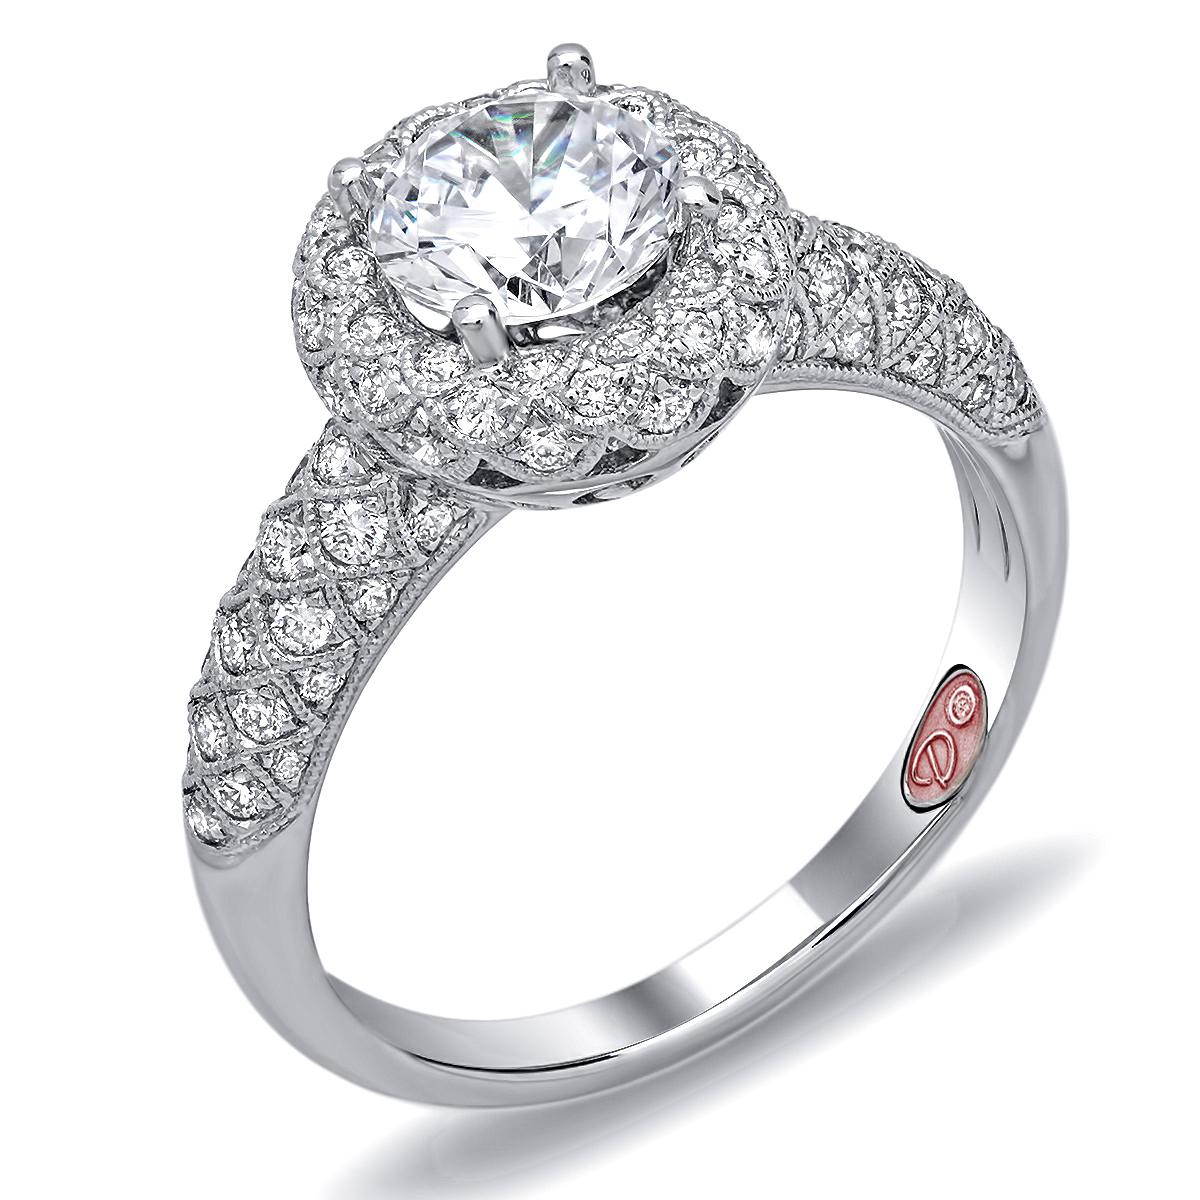 Designer Engagement Rings In Nashua